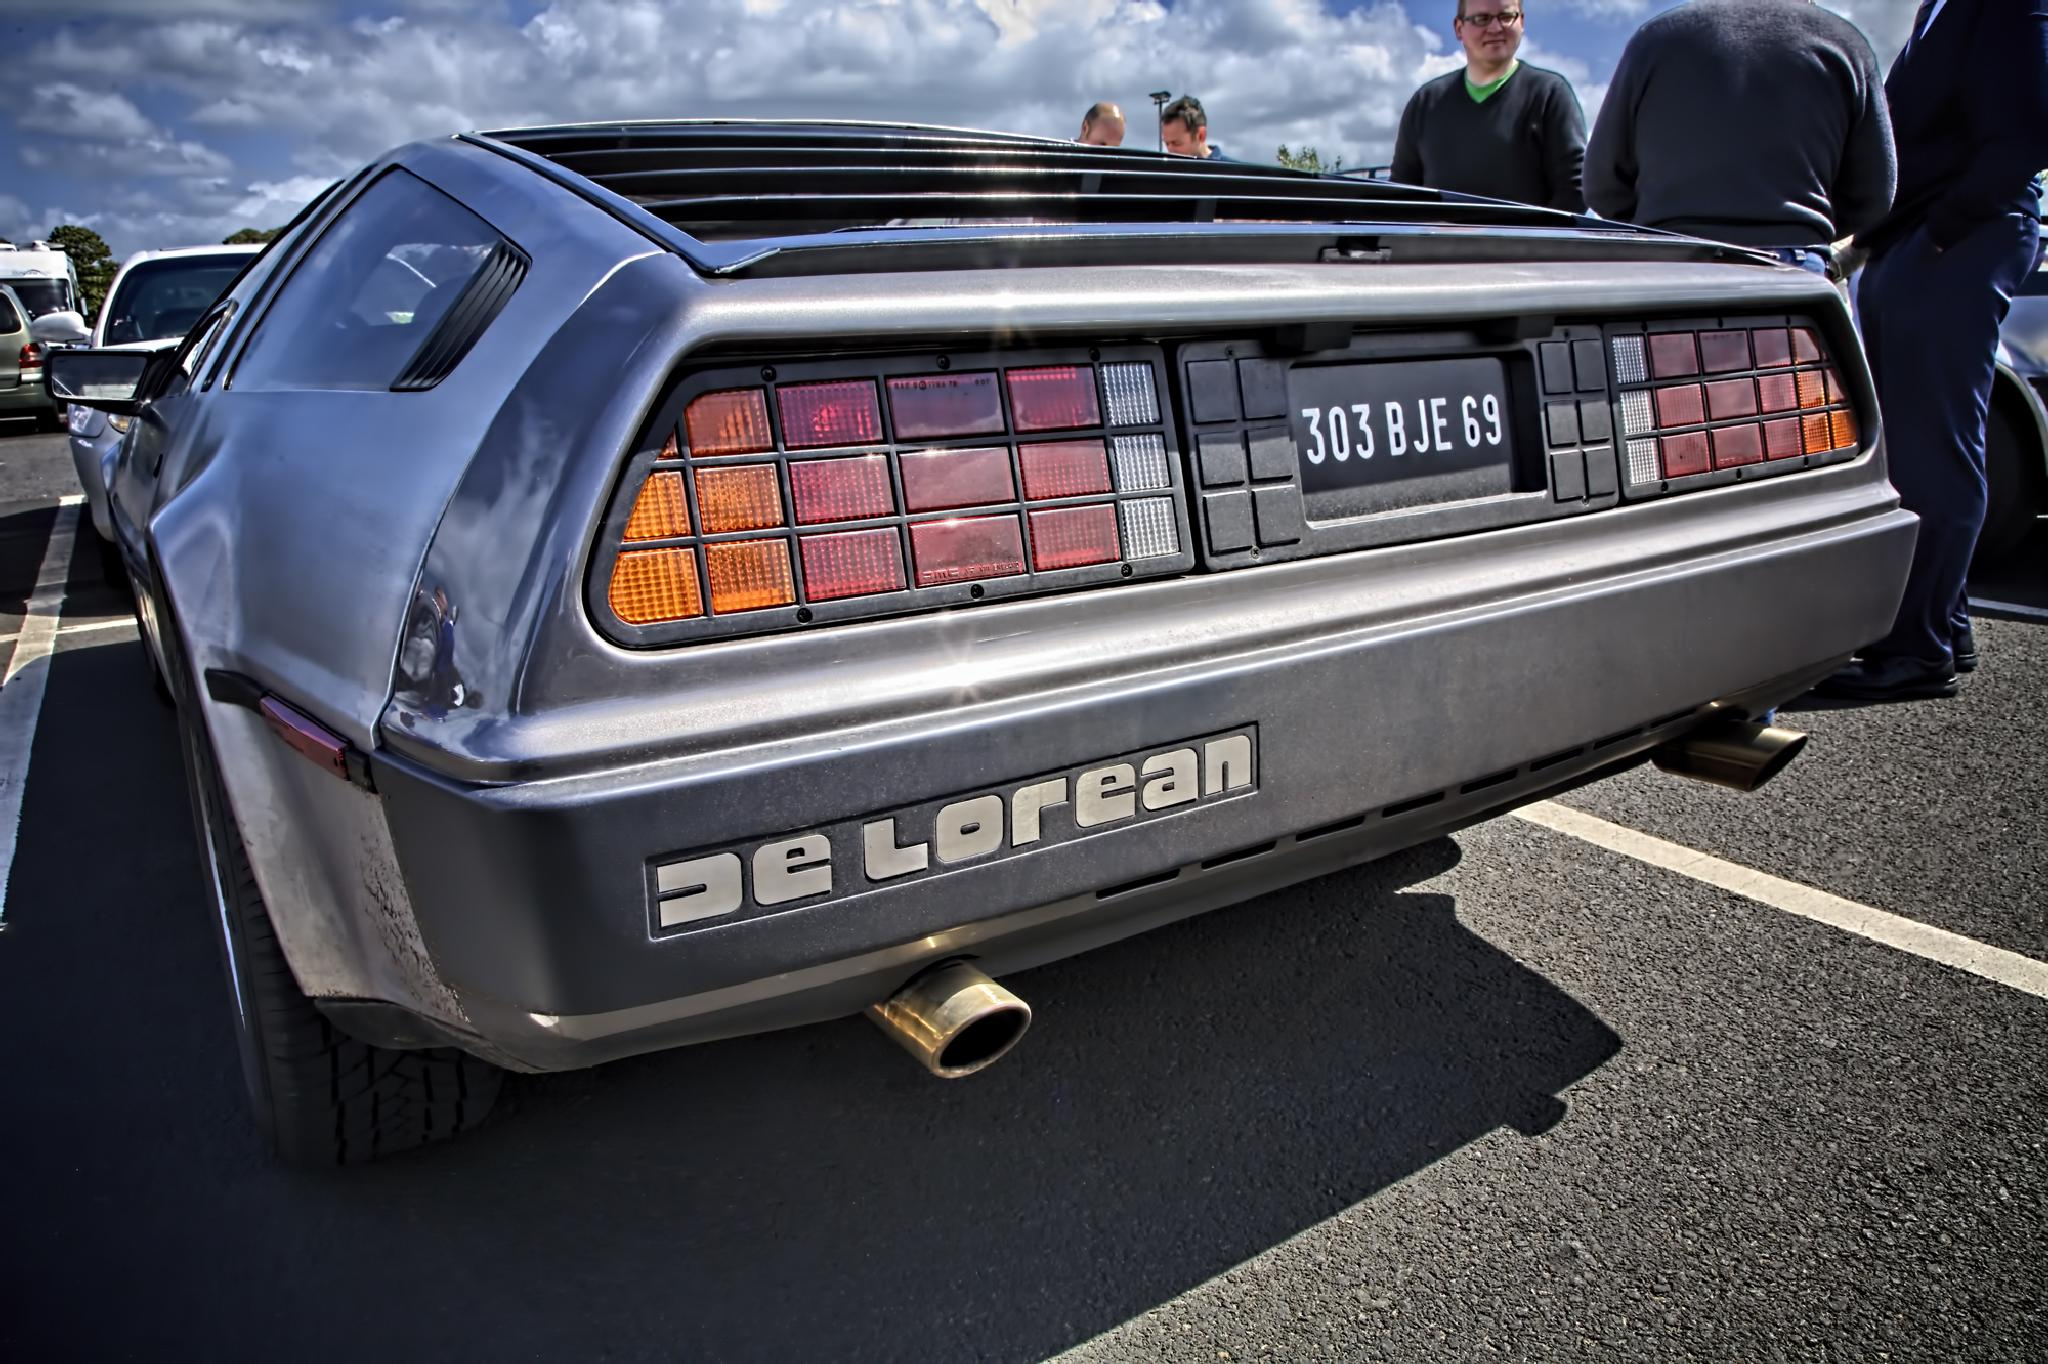 As DeLorean would say - my ass! by Peter Ellison